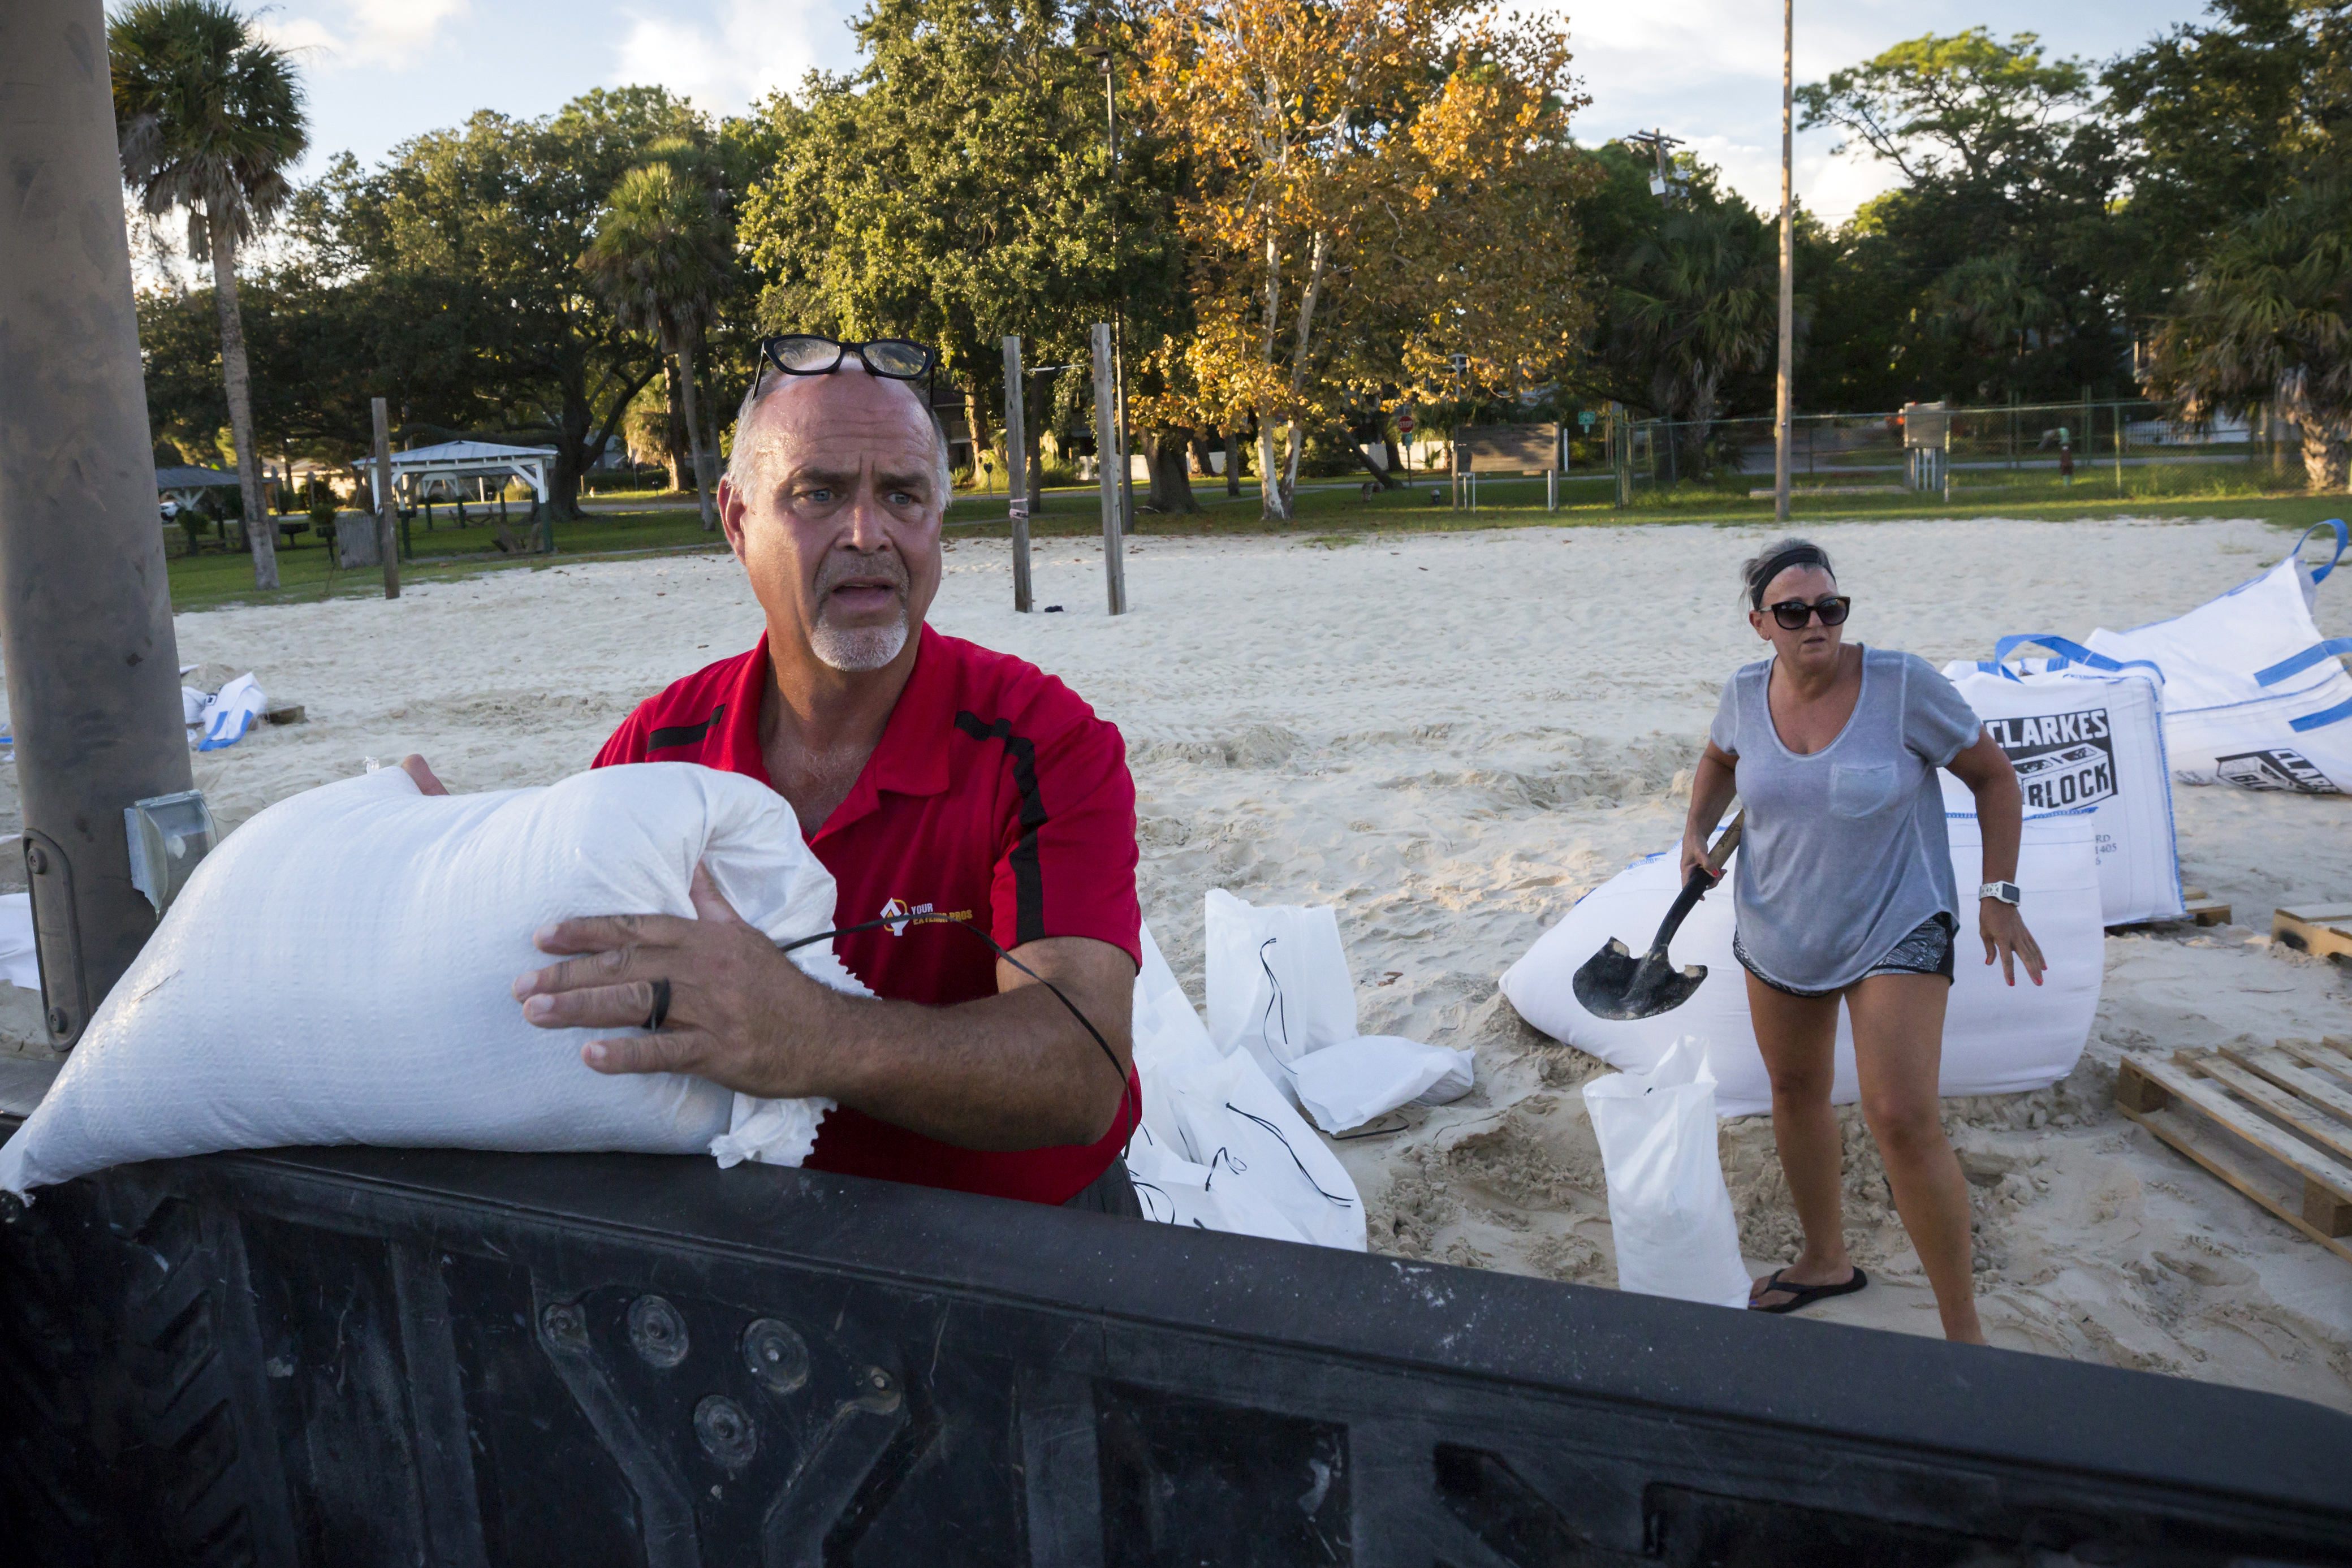 Tybee Island residents Sib McLellan, left, and his wife, Lisa McLellan, load sandbags into the back of their truck while preparing for Hurricane Florence, Wednesday, Sept., 12, 2018, on Tybee Island, Ga.